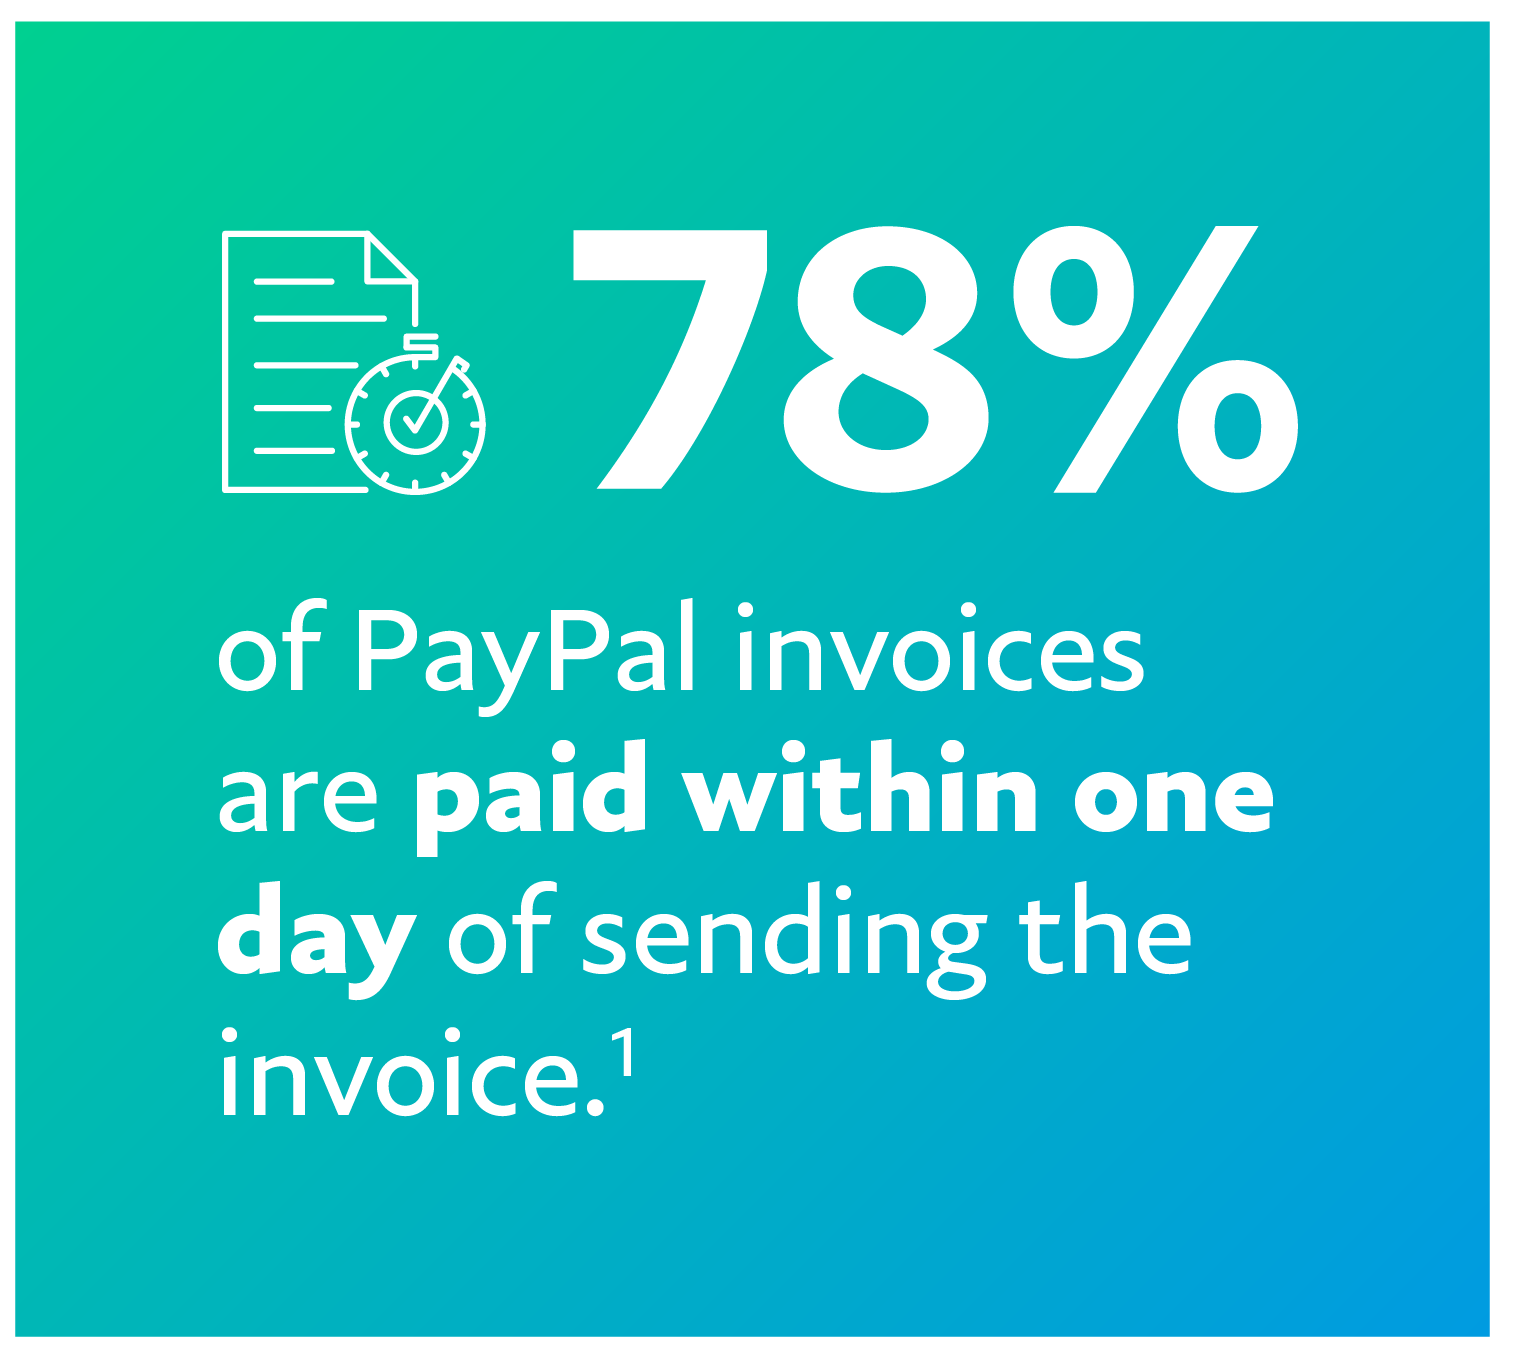 Text that states 78% of PayPal Invoices are paid within one day of sending the invoice.